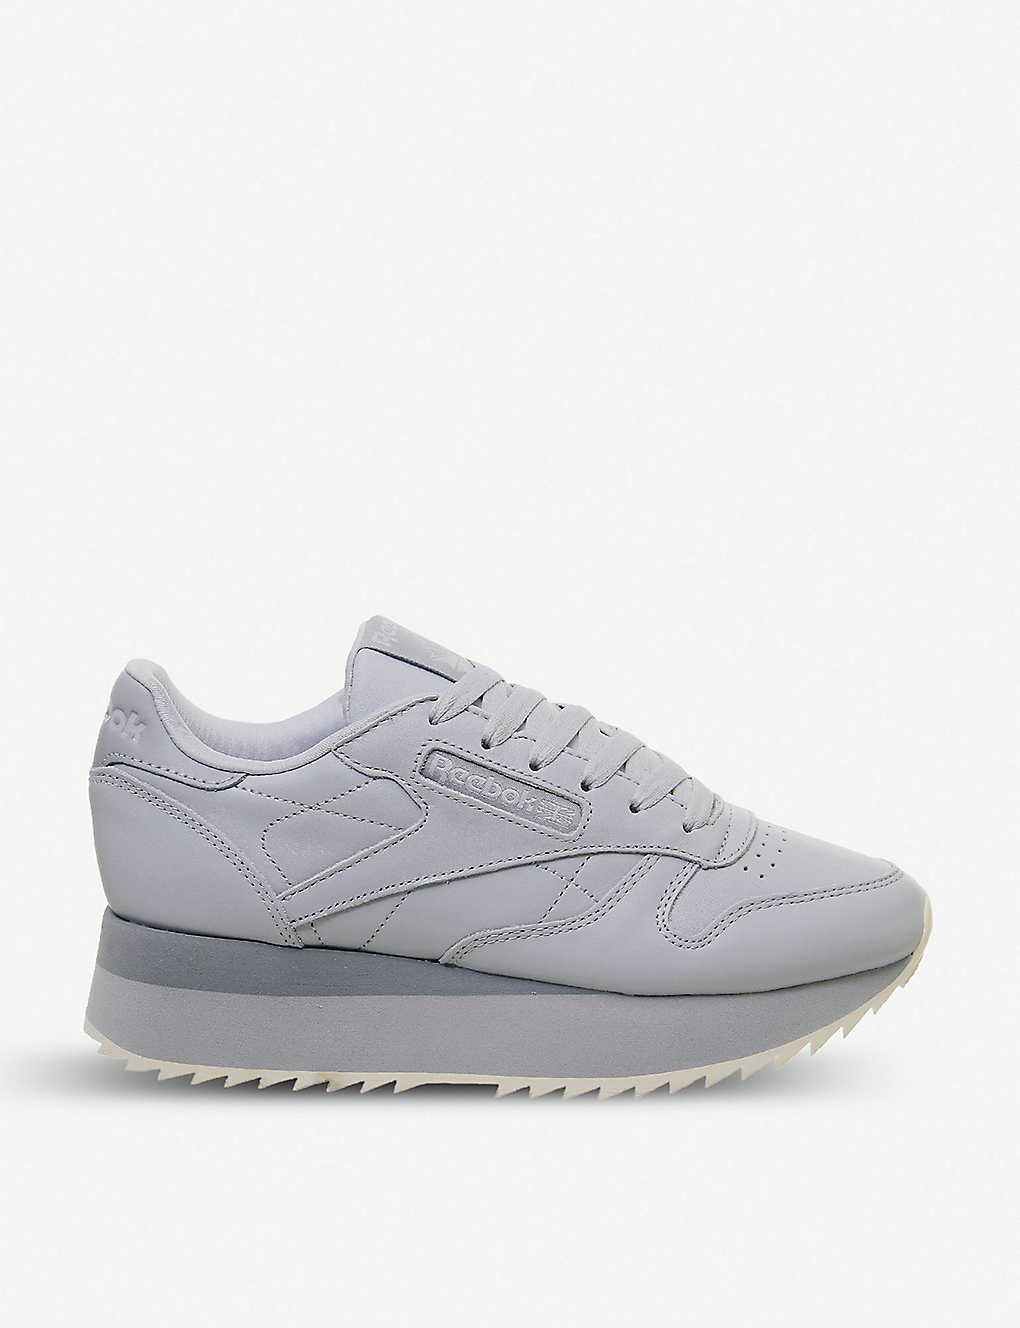 b66c290c88 REEBOK - Classic Leather Double platform leather trainers ...